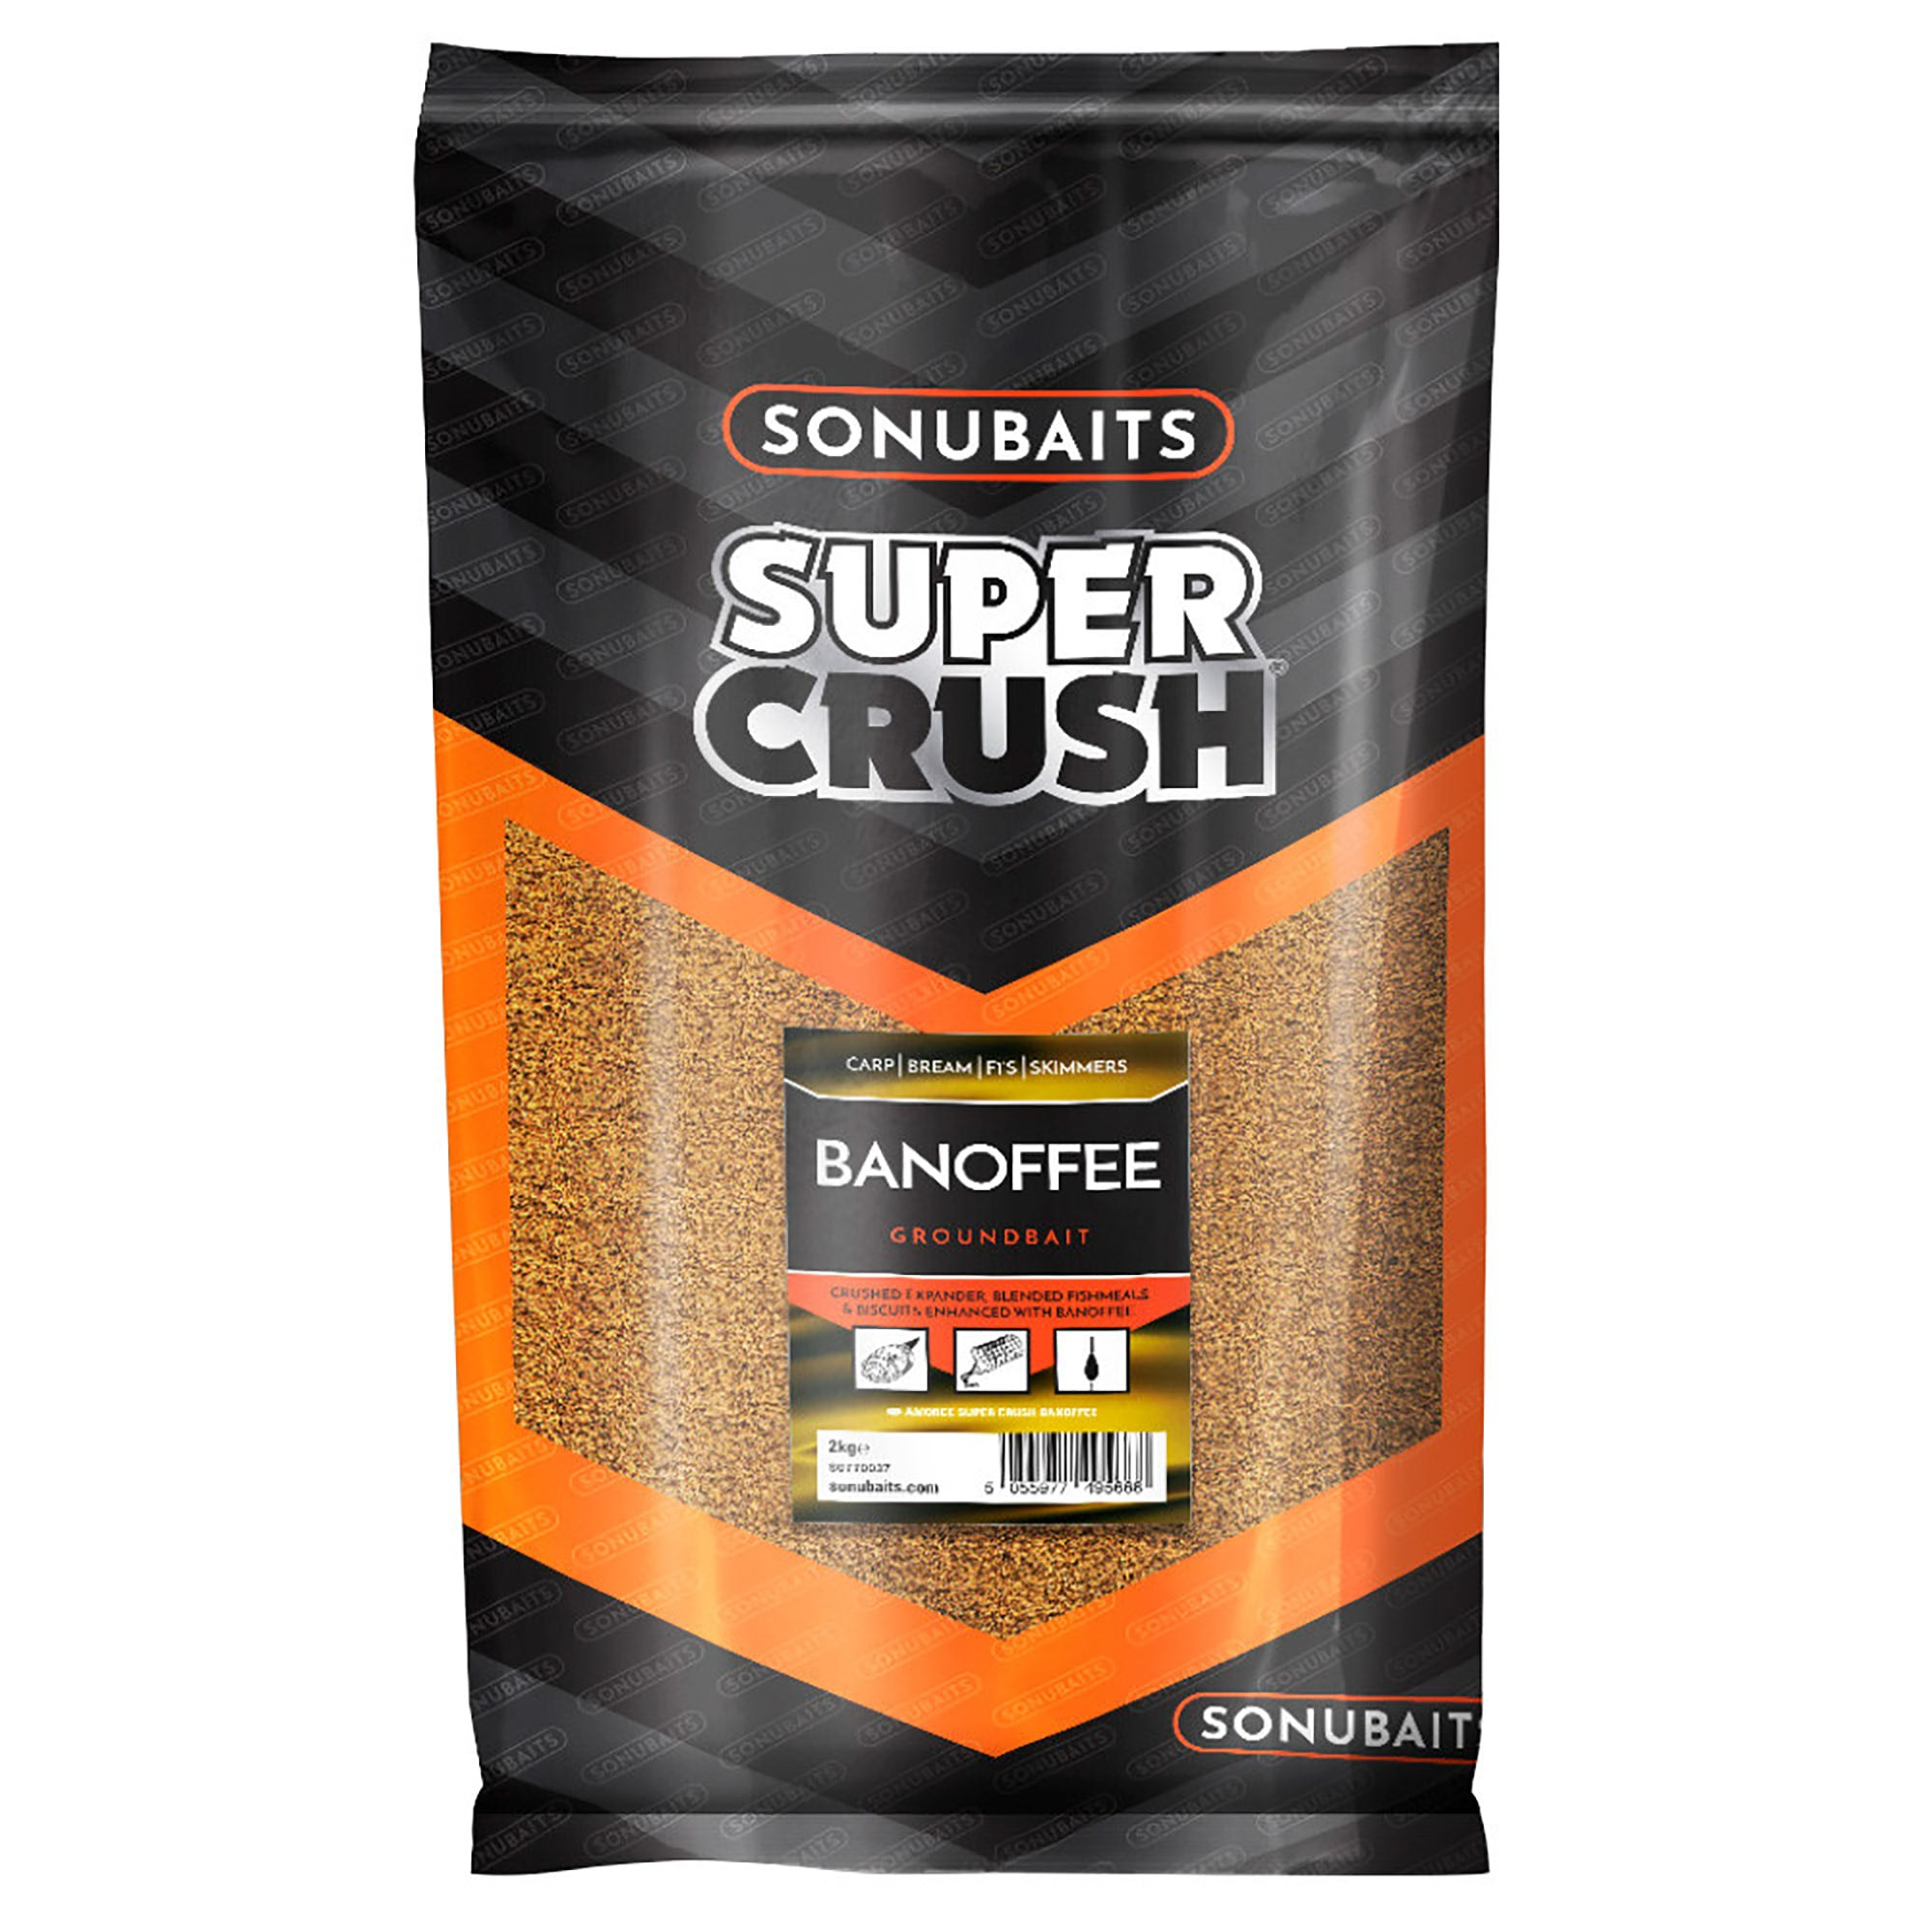 Sonubaits Groundbait BANOFFEE 2 Kg Pastura Pesca NEW 2020